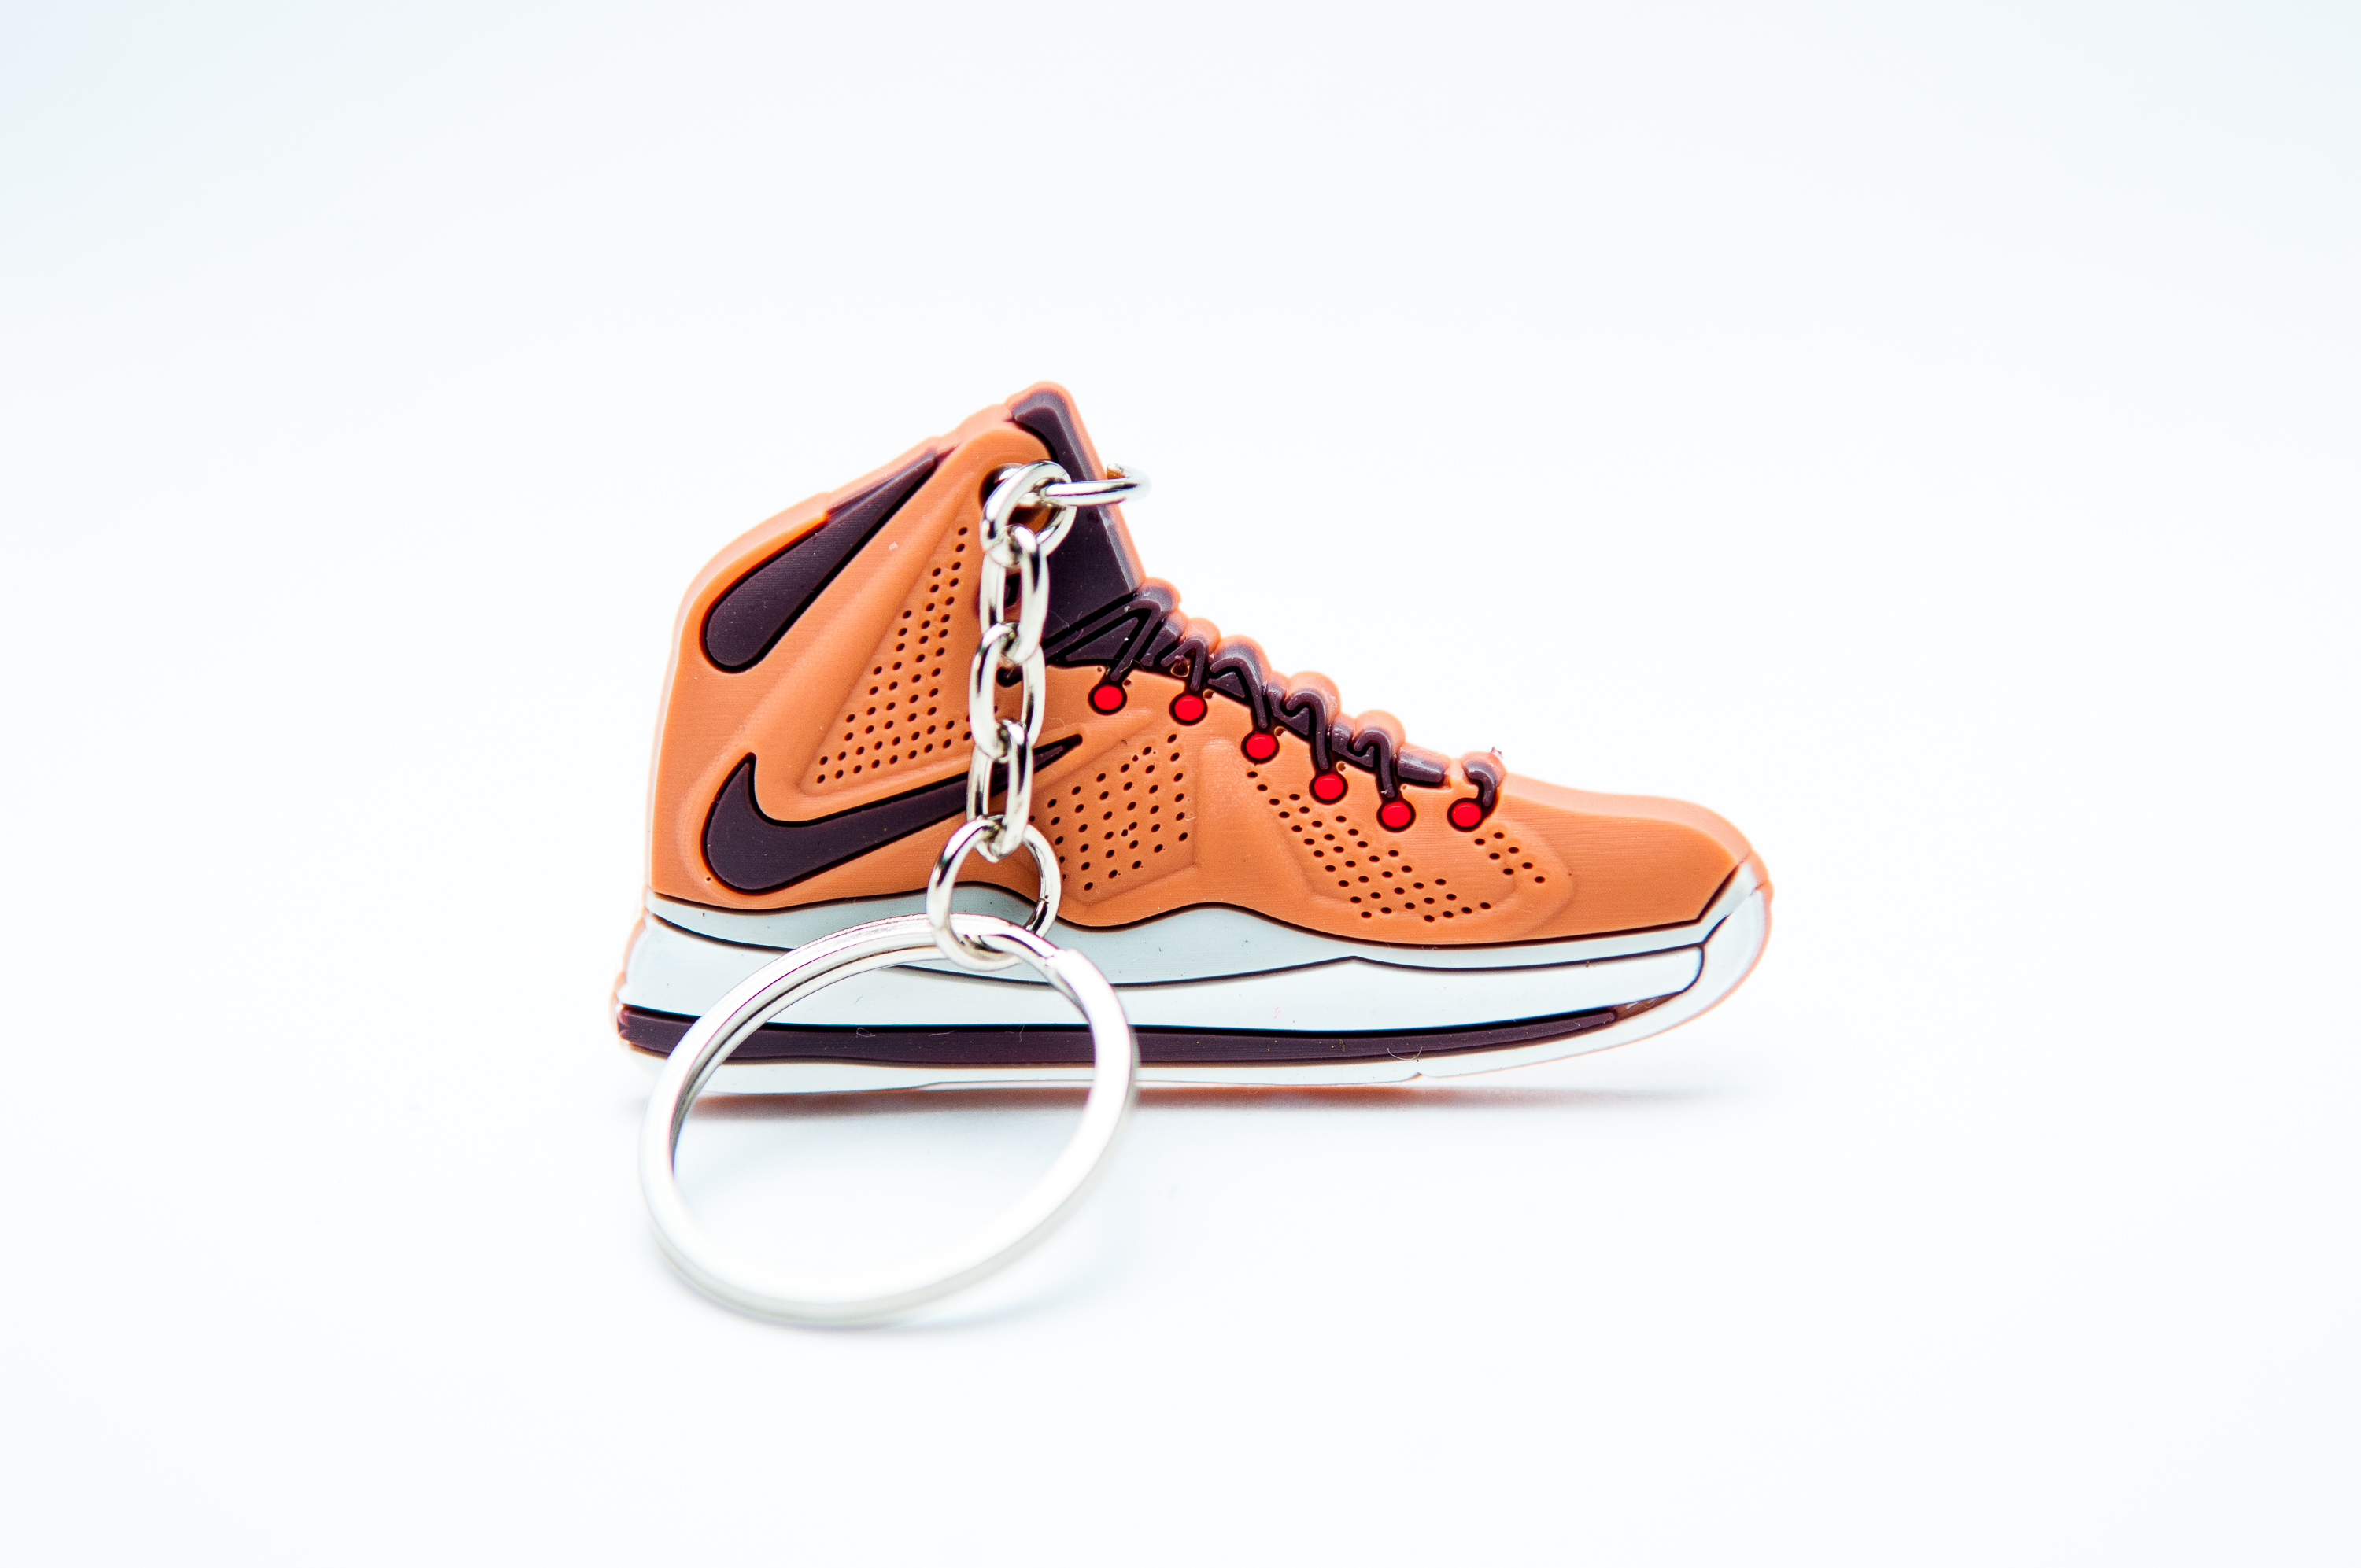 e5f34c45f2f9 Nike Lebron 10 Orange - Kool keyringsKool keyrings